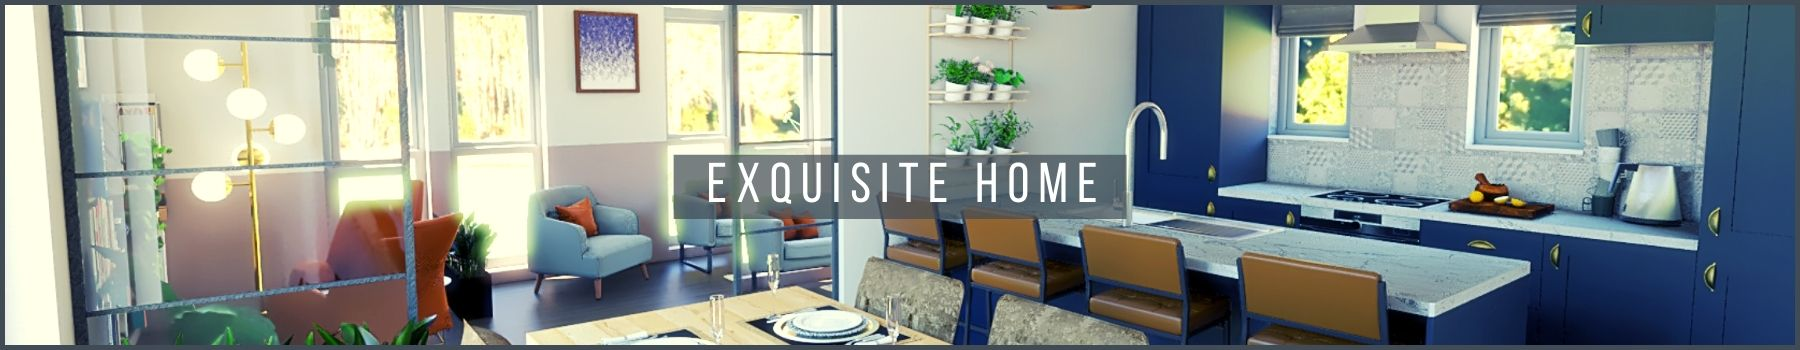 Banner 2 - Exquisite Home